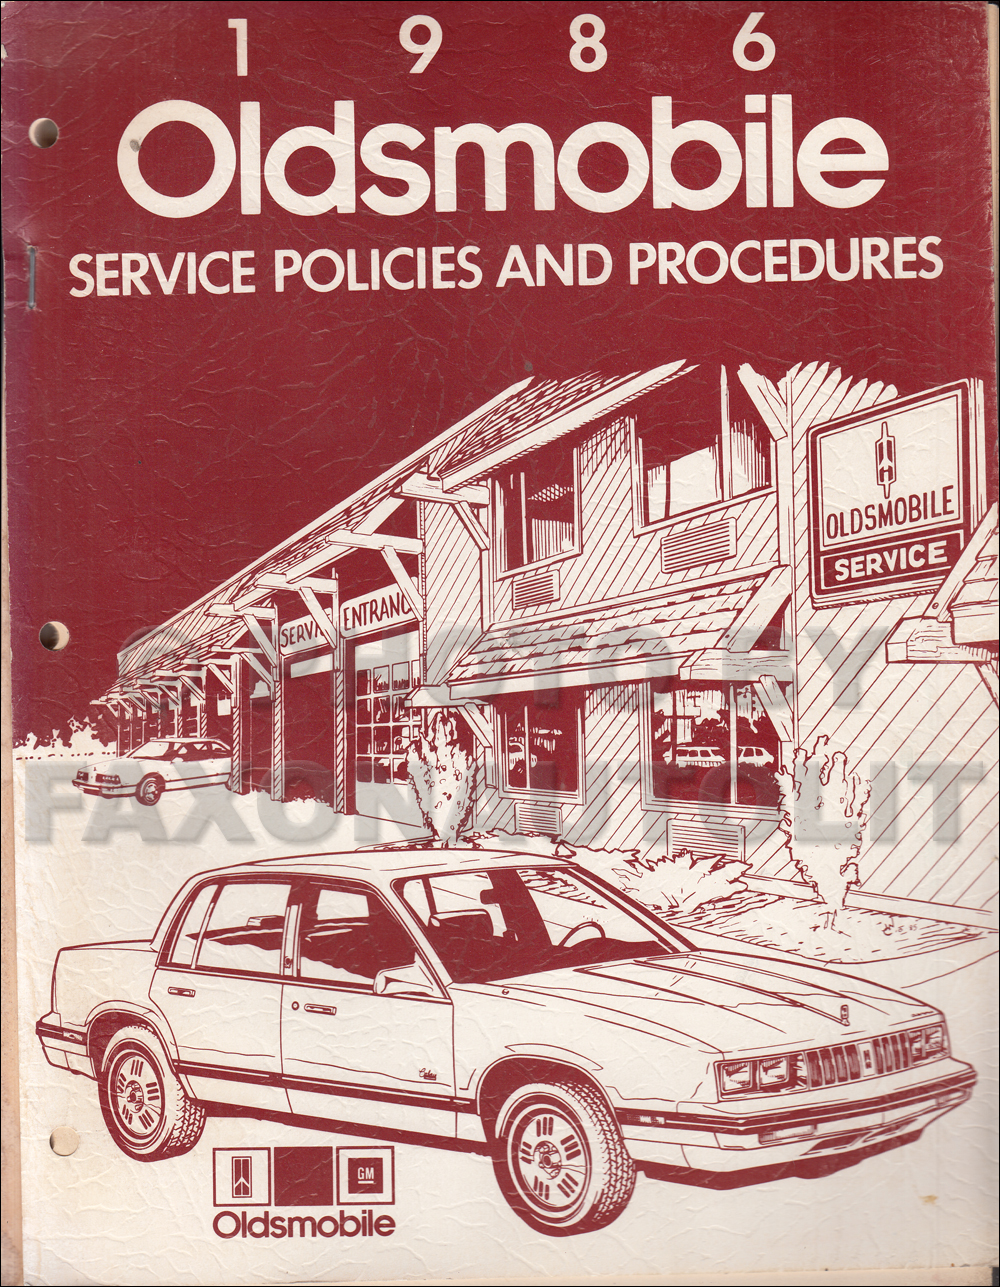 1986 Oldsmobile Policies and Procedures Manual Original